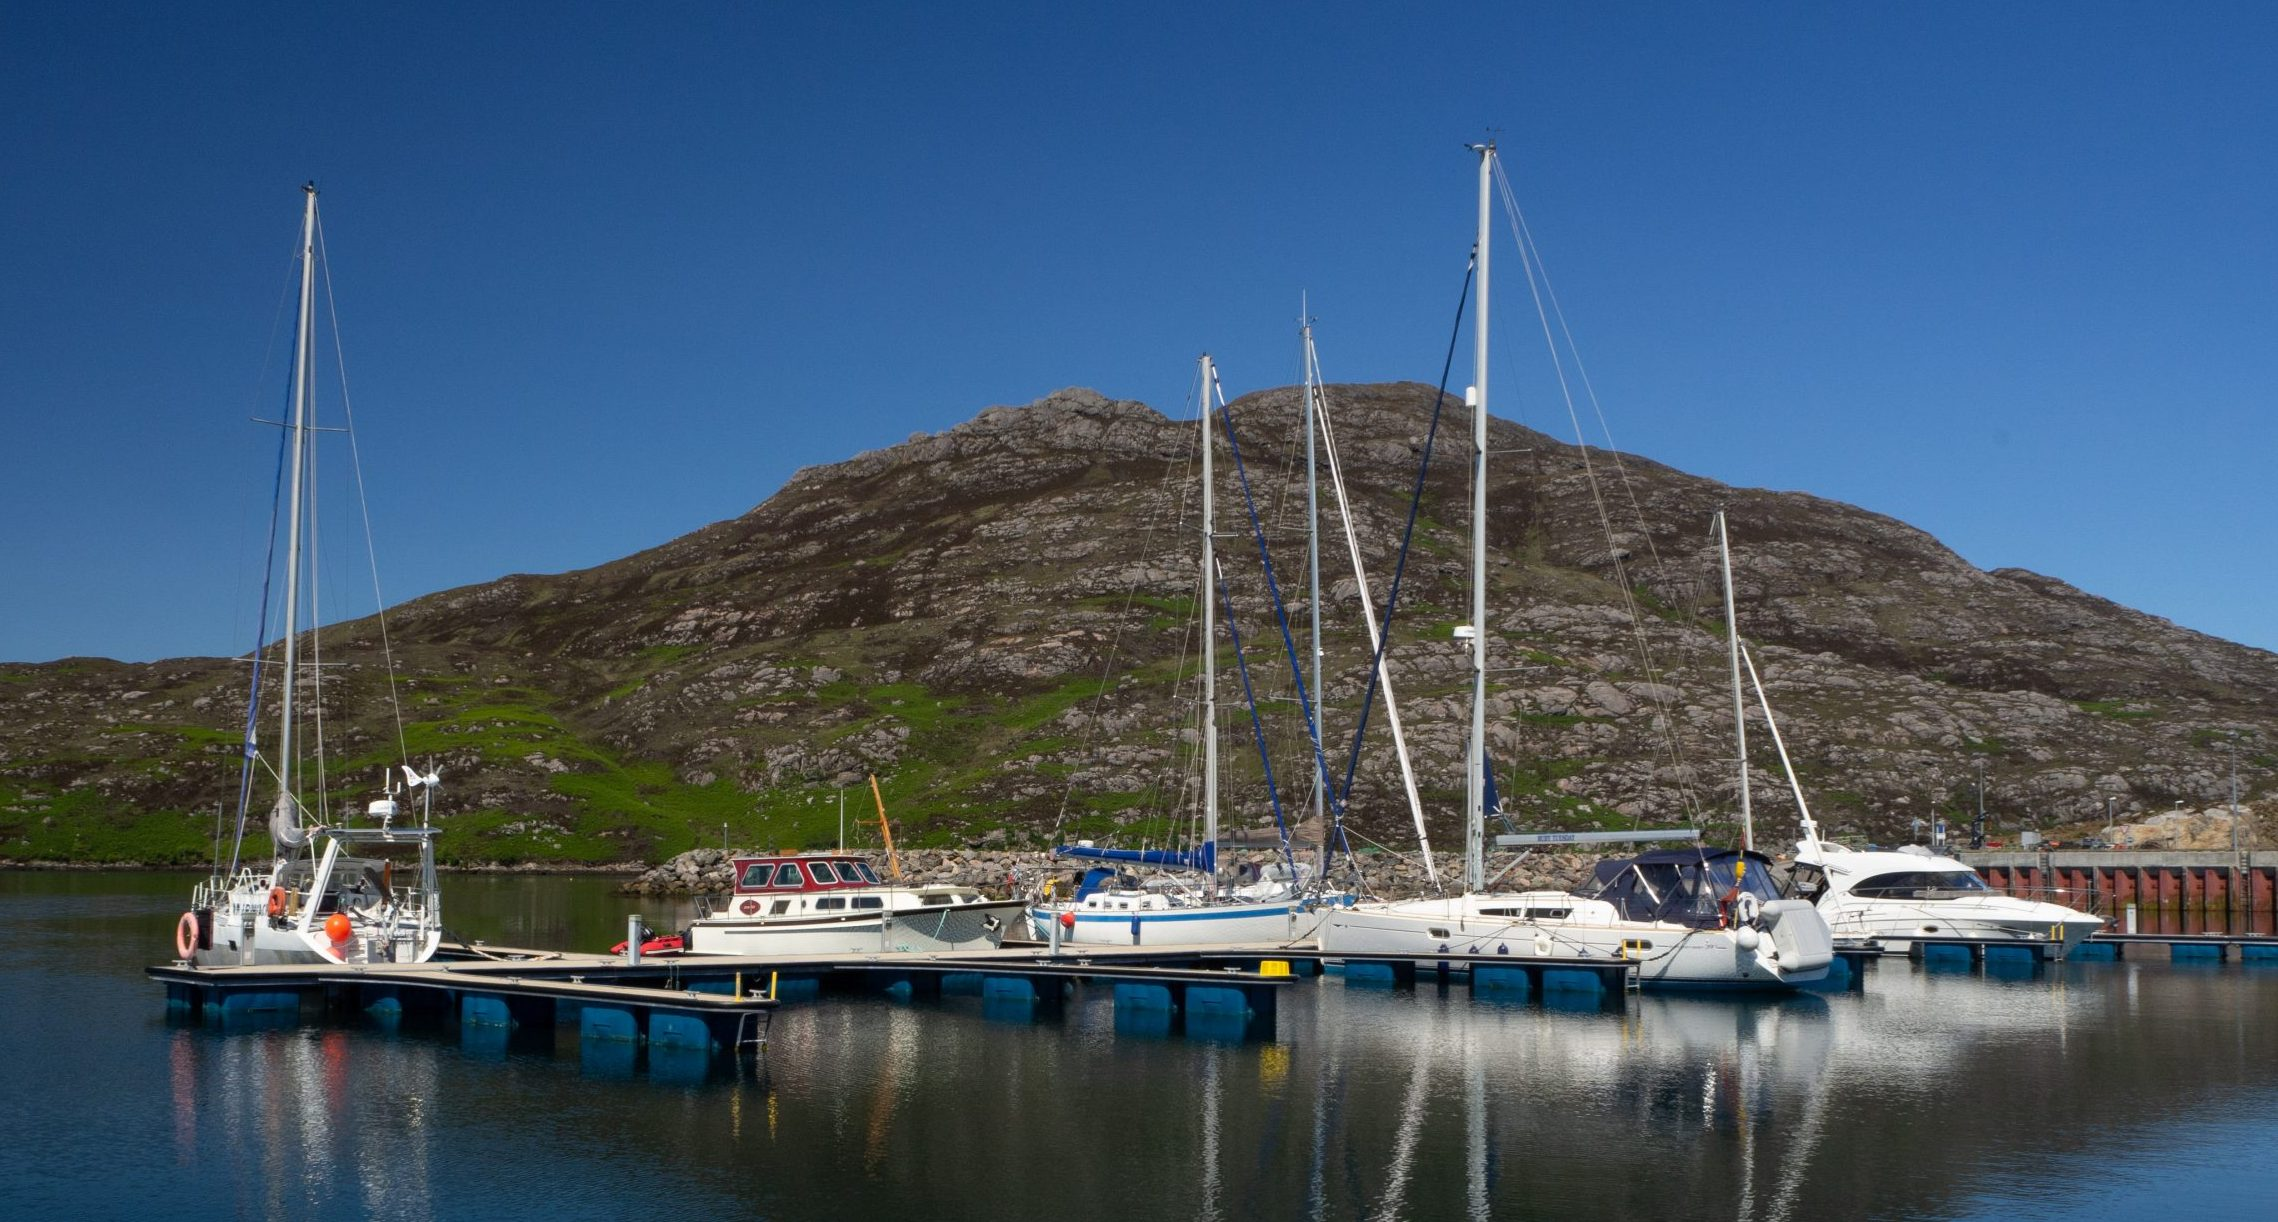 Lochboisdale Harbour from the water